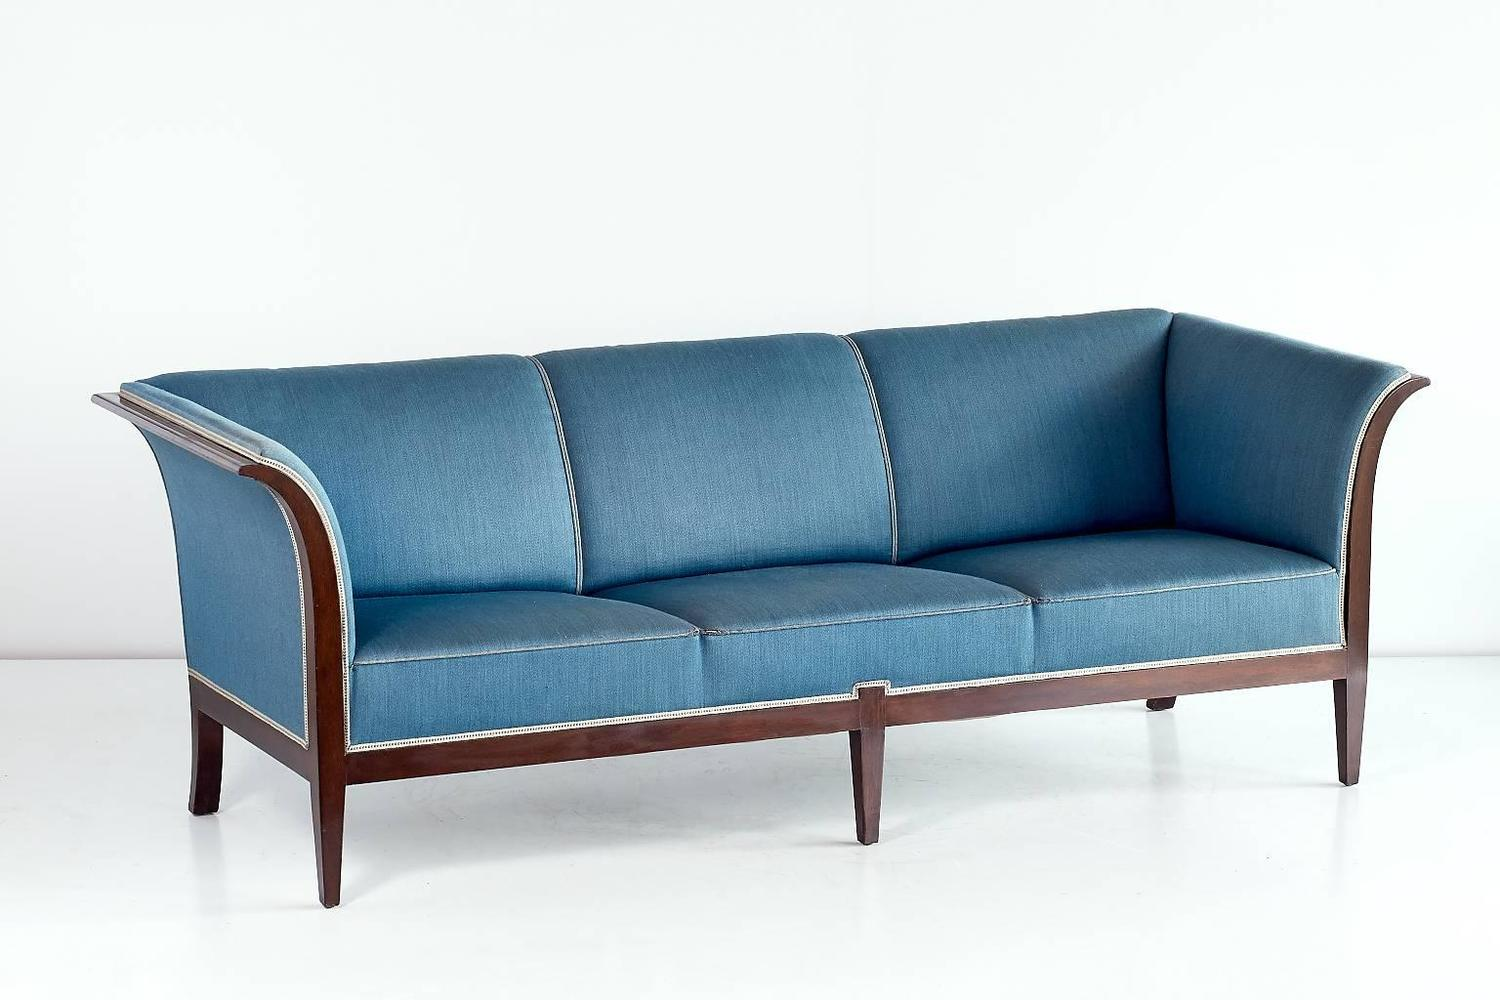 a sofa in the forties leather with pull out bed frits henningsen mahogany 1940s for sale at 1stdibs